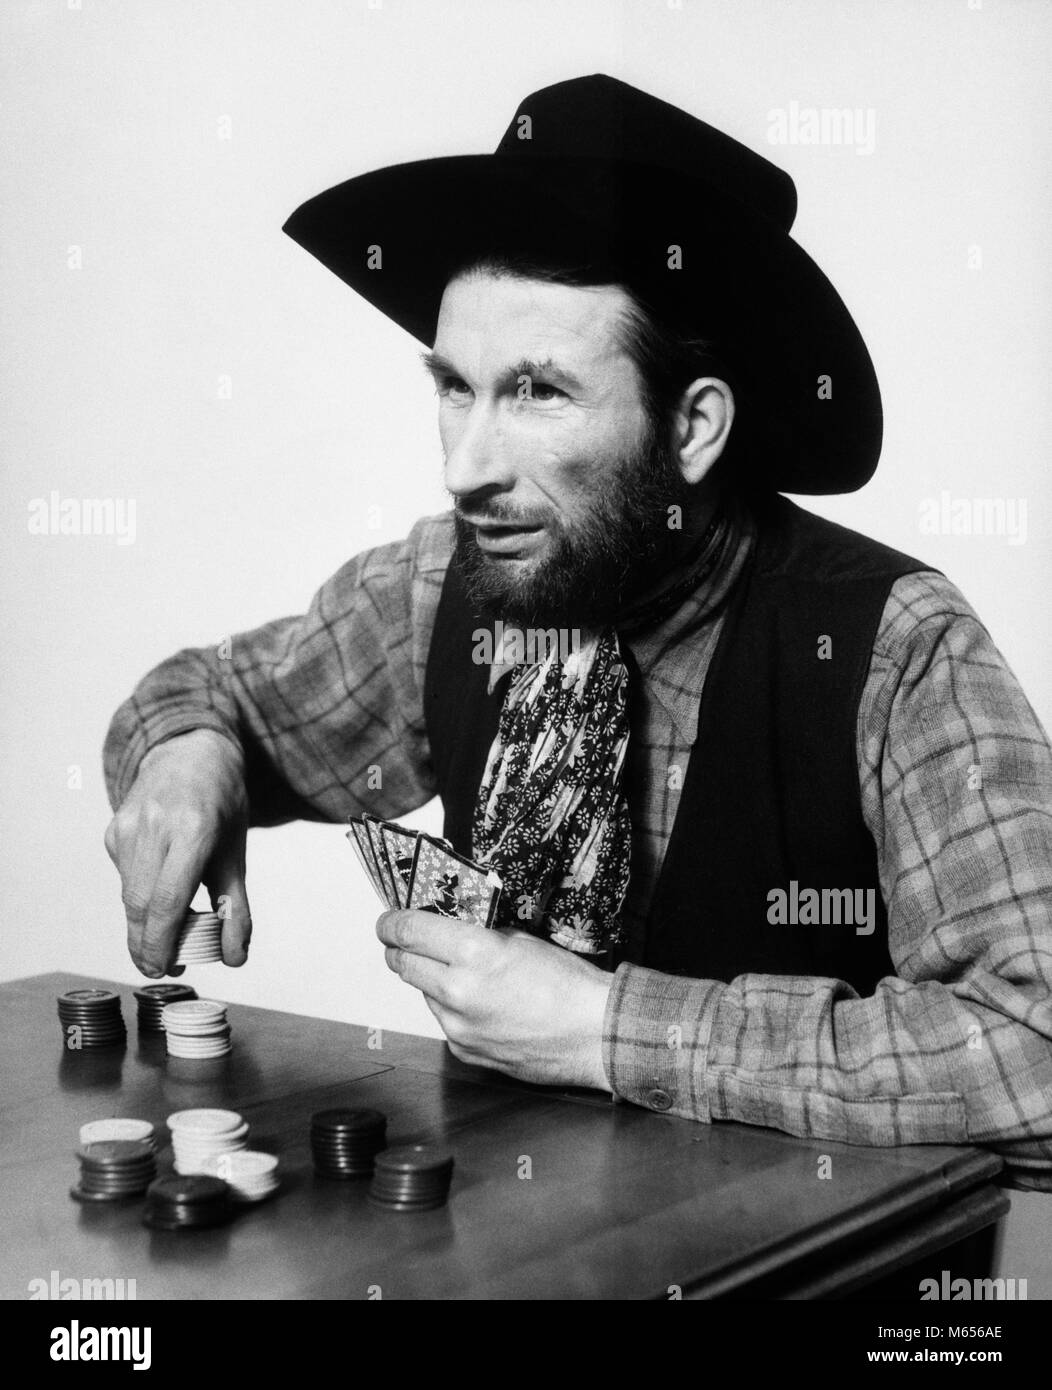 1930s BEARDED MAN COWBOY PLAYING CARDS GAMBLING BETTING POKER CHIPS - c988 HAR001 HARS CHOICE EXCITEMENT LUCKY RECREATION - Stock Image